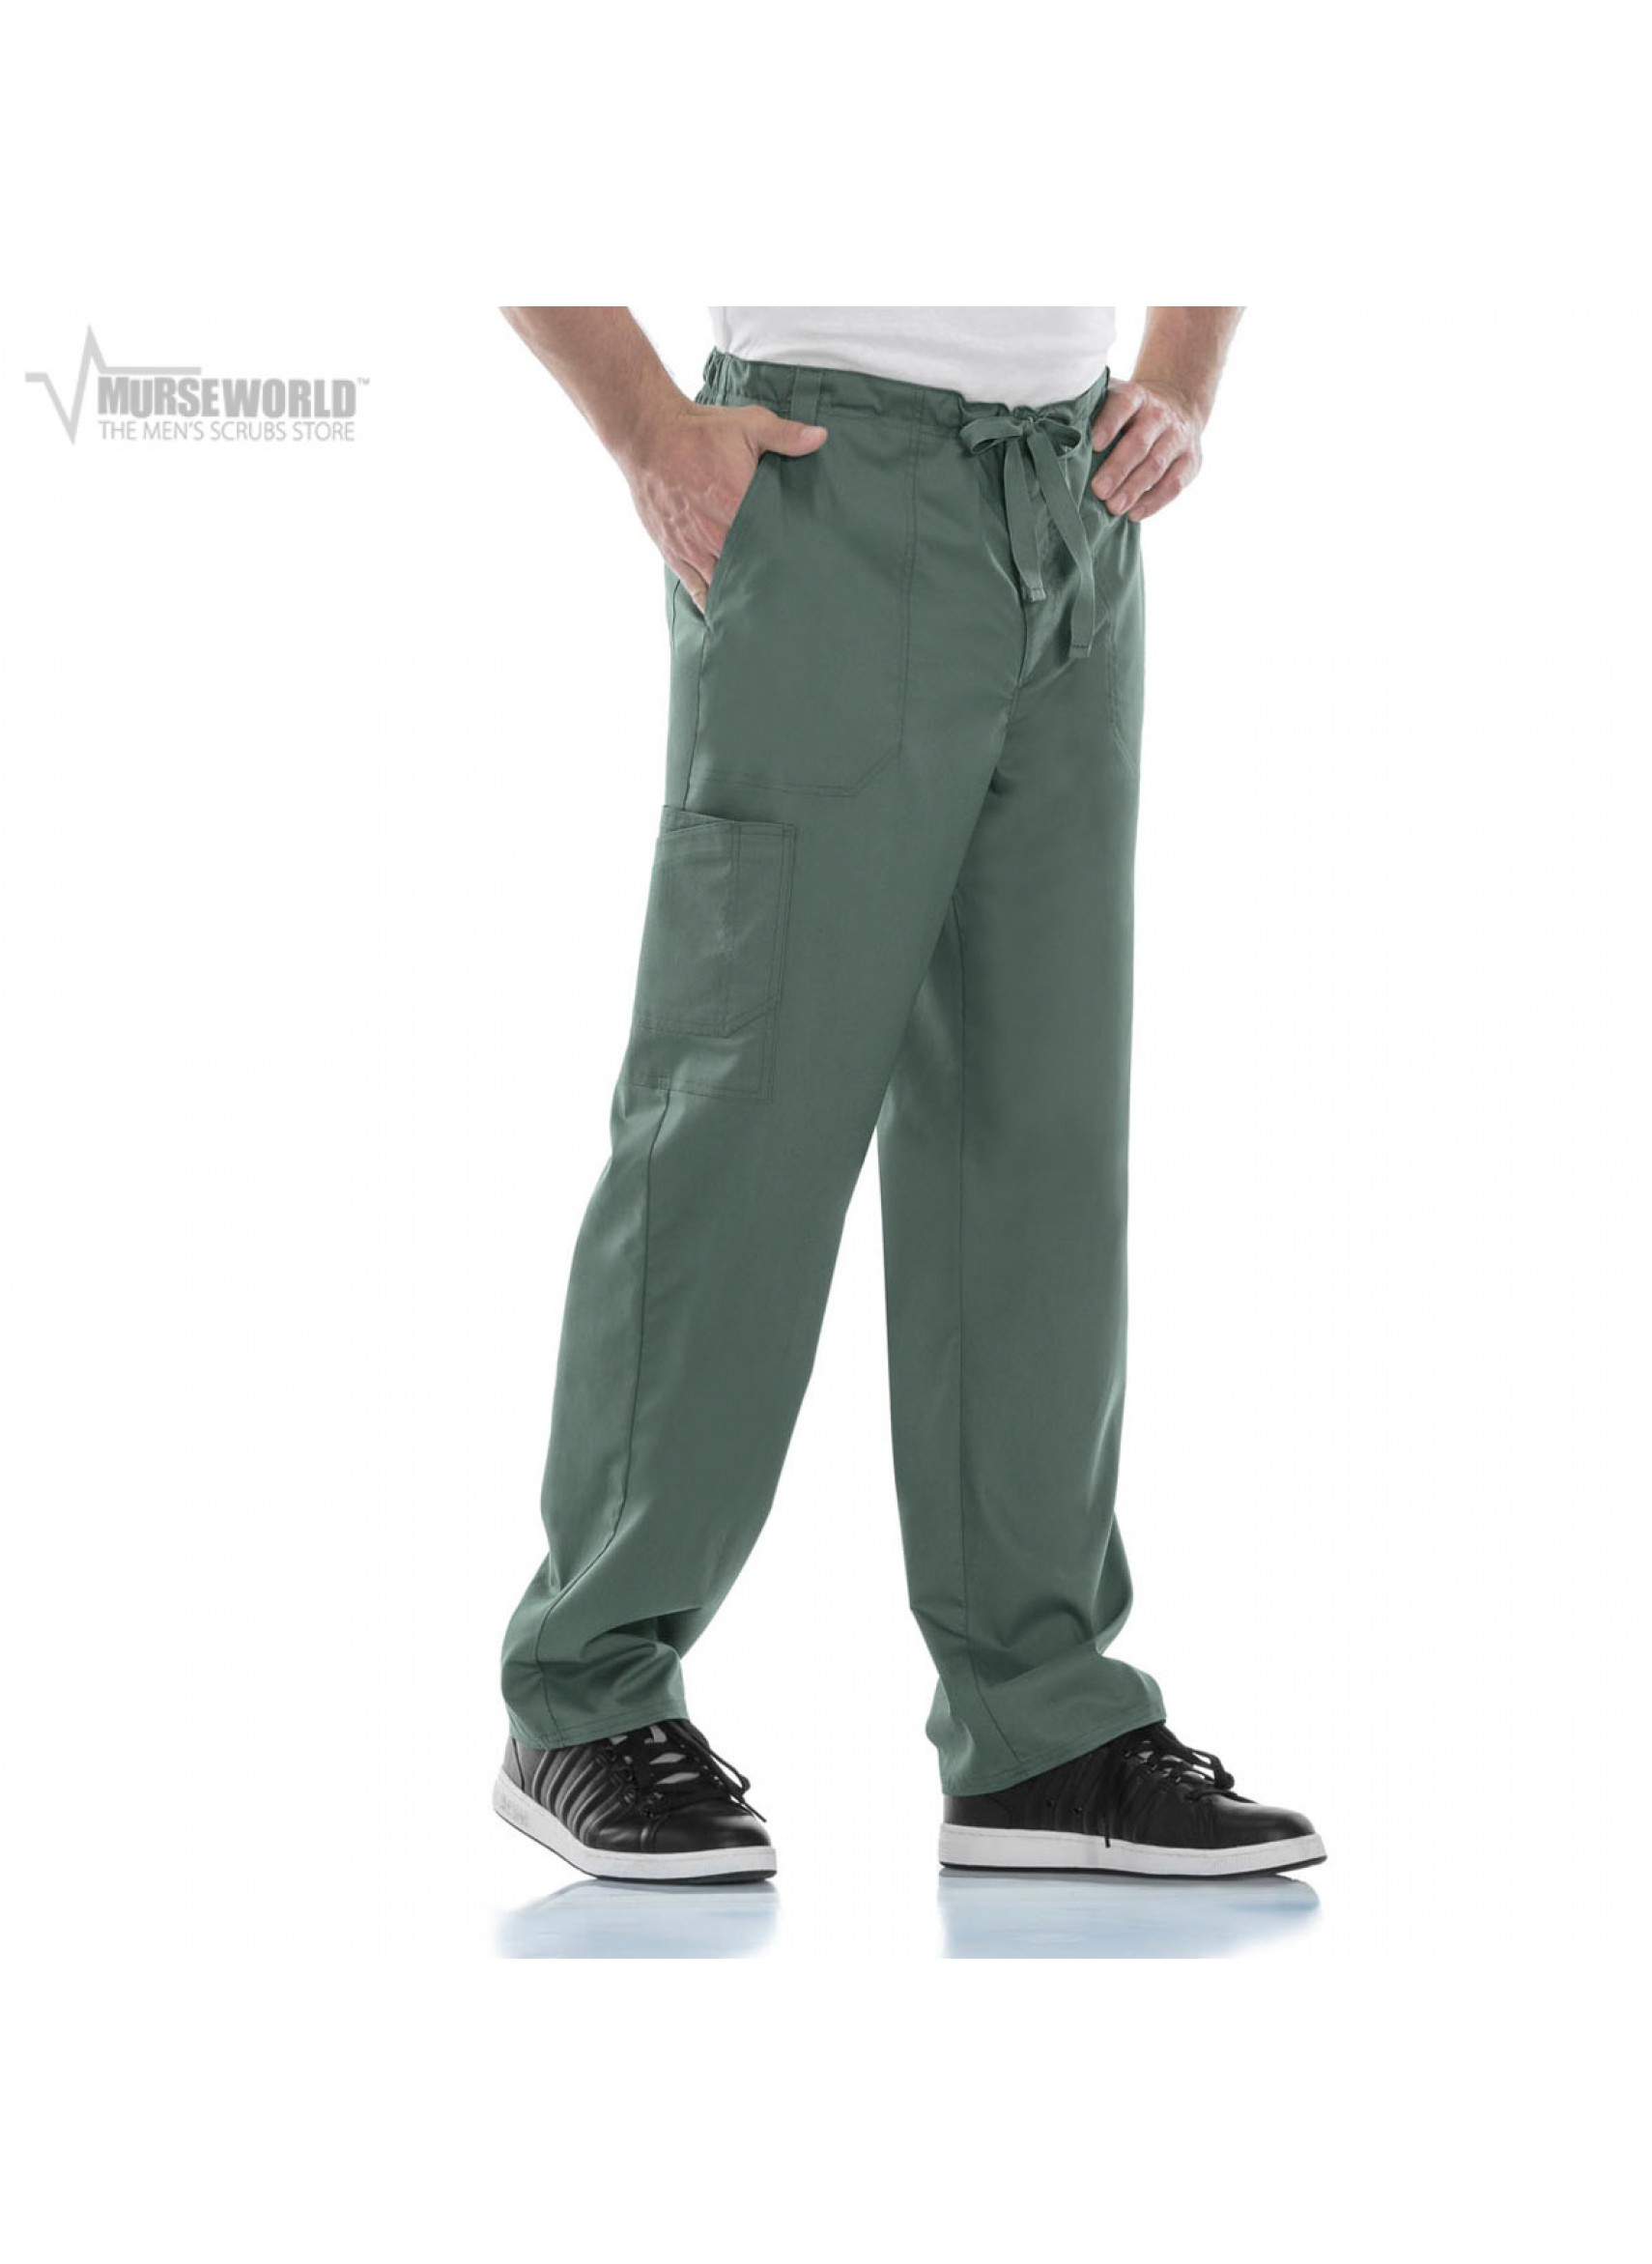 02441c2edfc 20% off all Dickies Scrubs! Use code DICKIES20 at checkout! Cherokee Luxe  Men's Fly Front Drawstring Cargo Pant - 1022